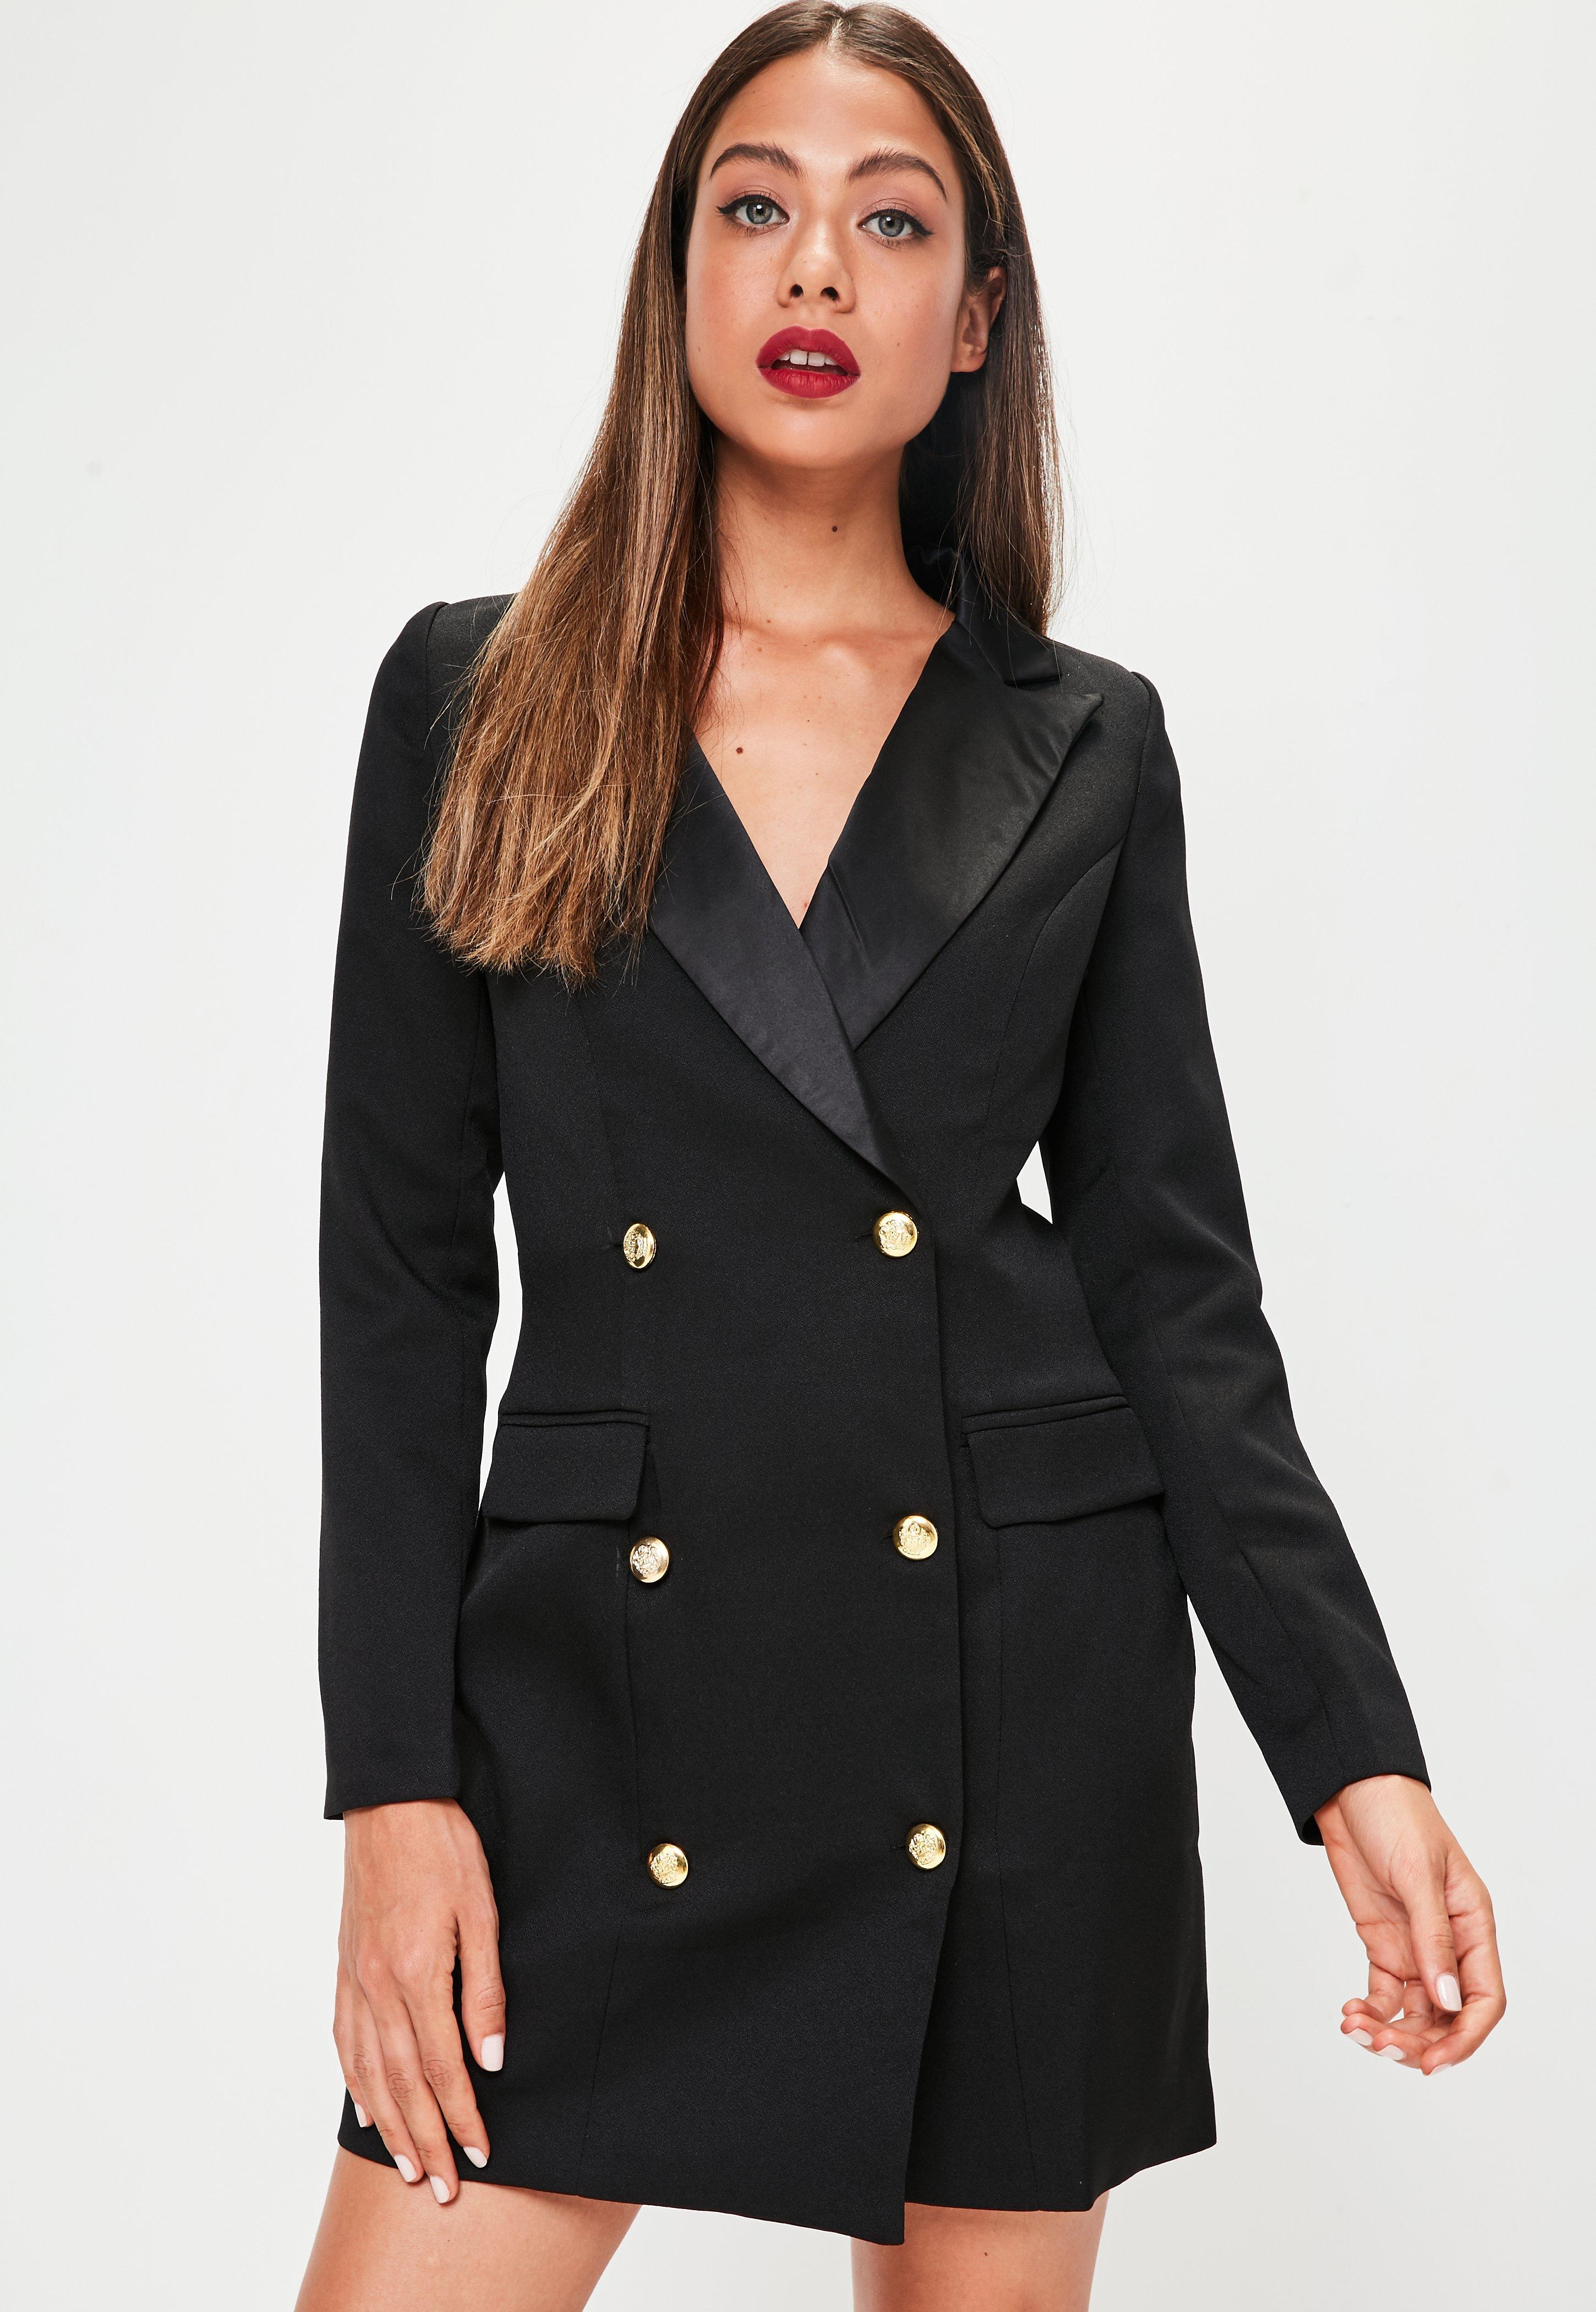 Blazer Dresses | Shop Tuxedo Dresses - Missguided